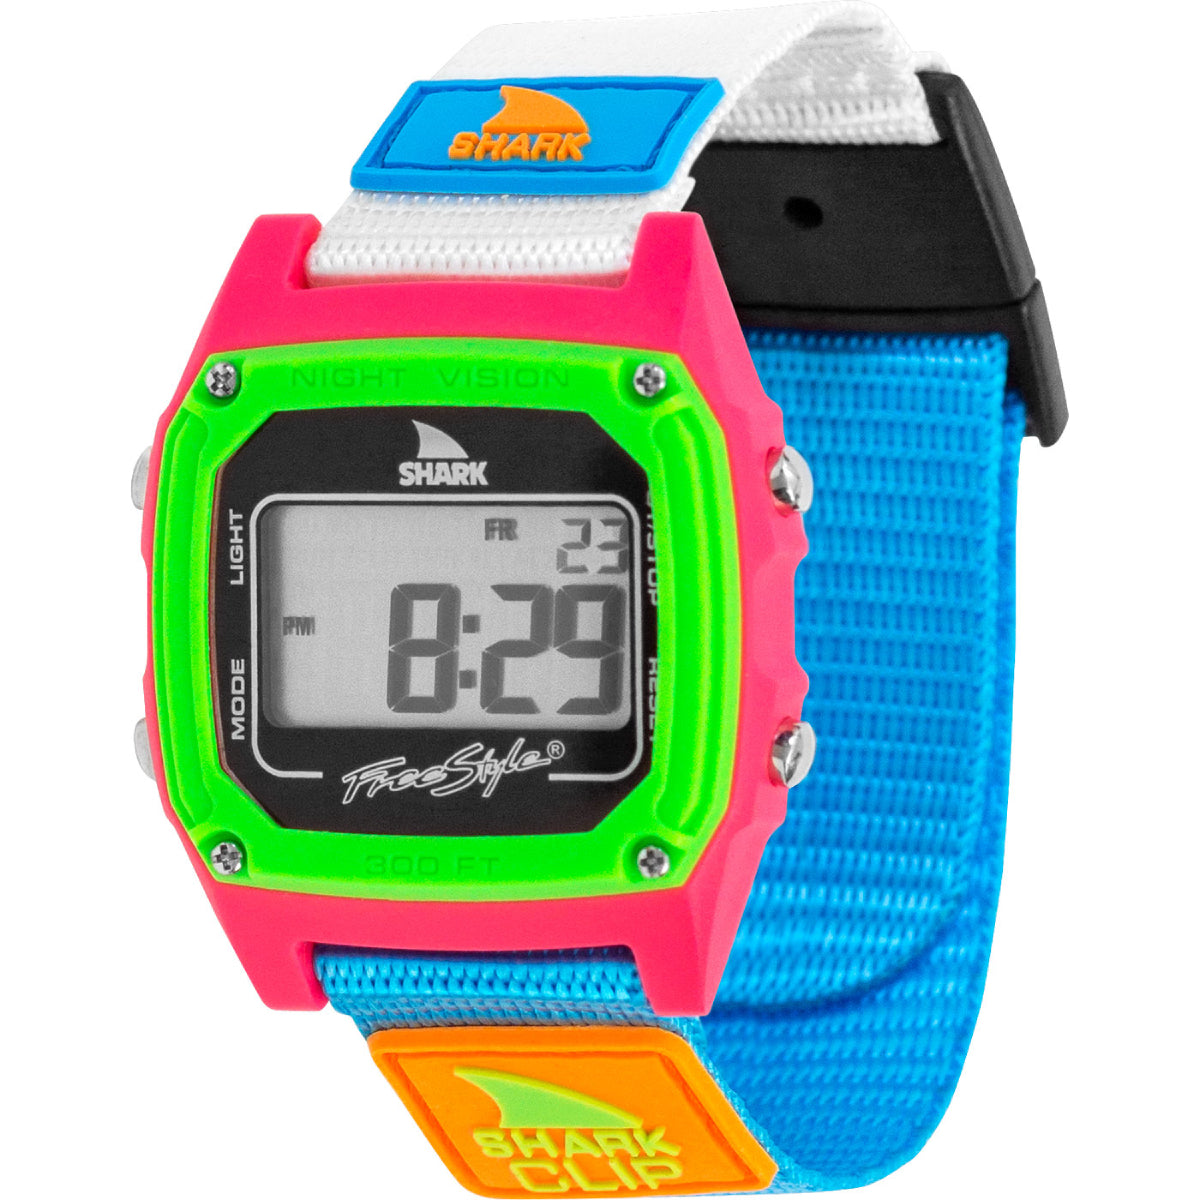 Freestyle Watches Shark Classic Clip Black Neon Unisex Manual Guide